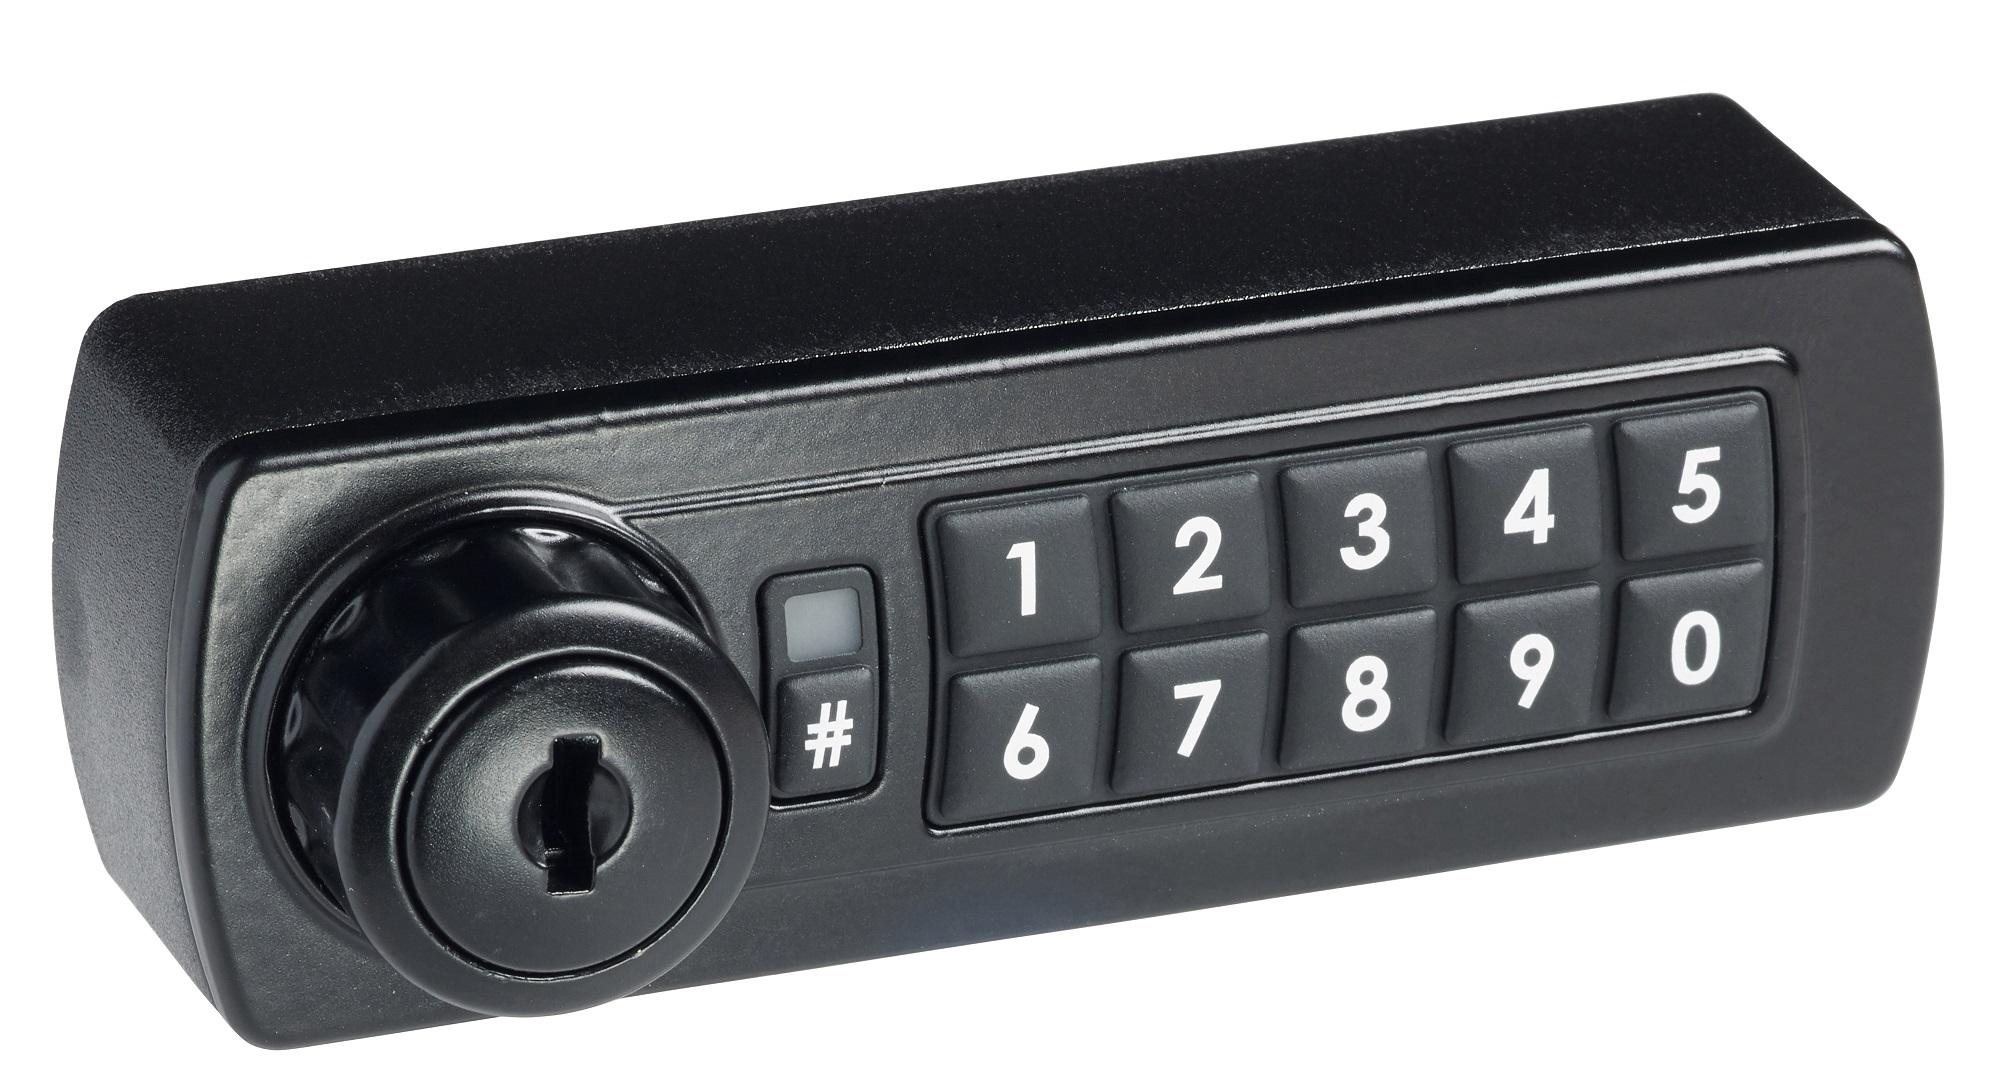 Gemini Surface Mount Digital Lock available in Black